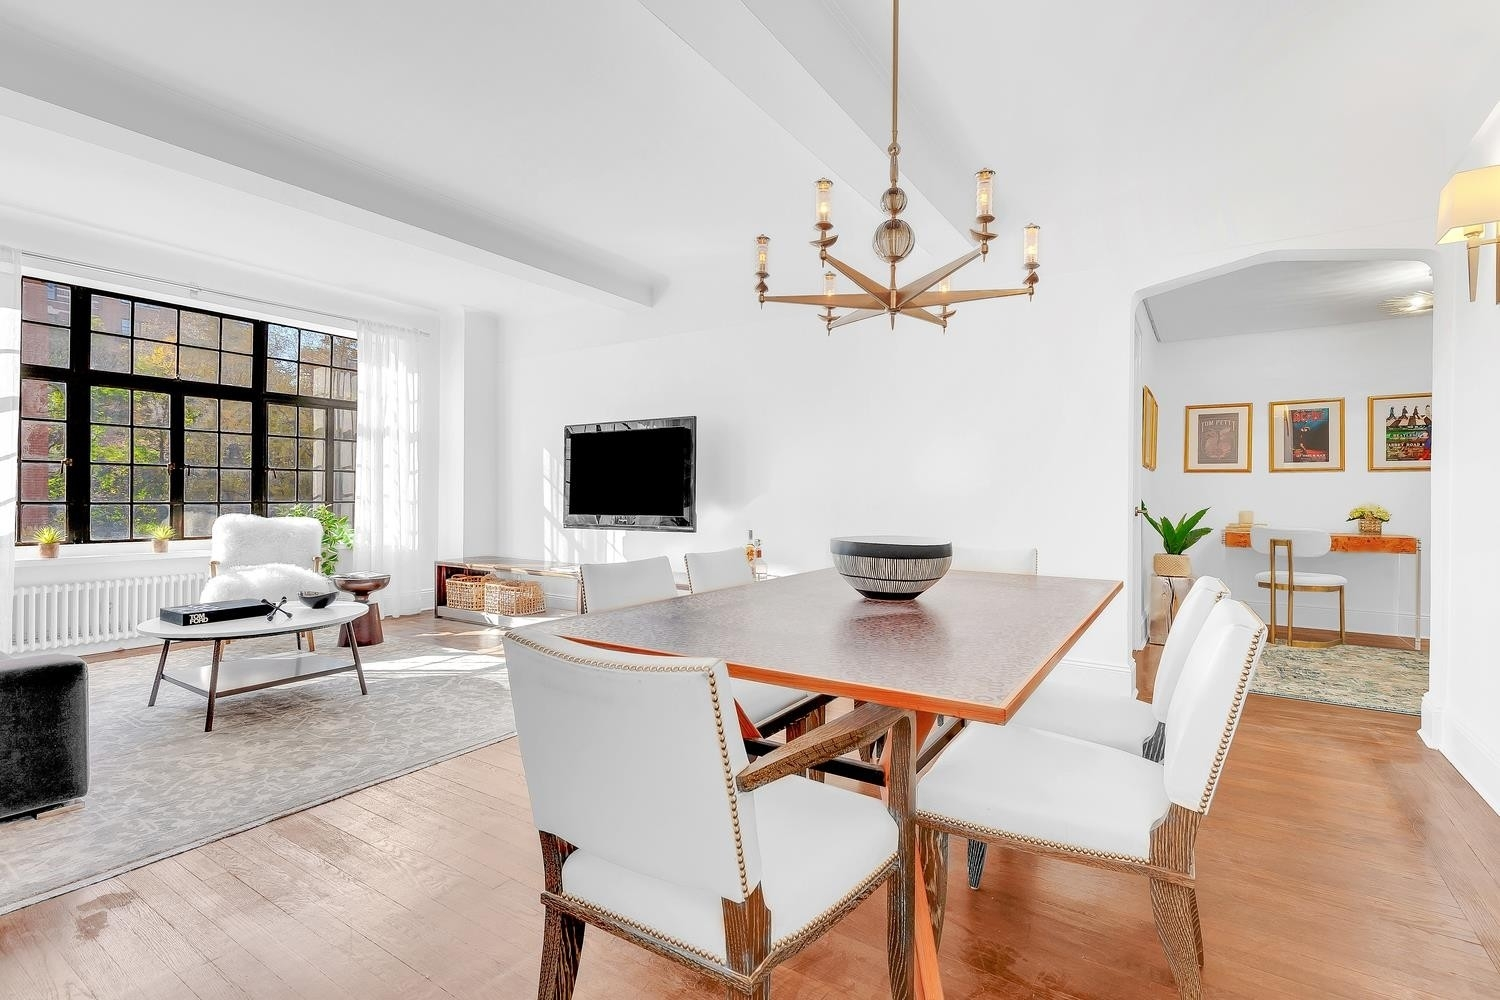 2. Co-op Properties for Sale at GRAMERCY OWNERS LTD, 44 Gramercy Park North, 4C Gramercy Park, New York, NY 10010